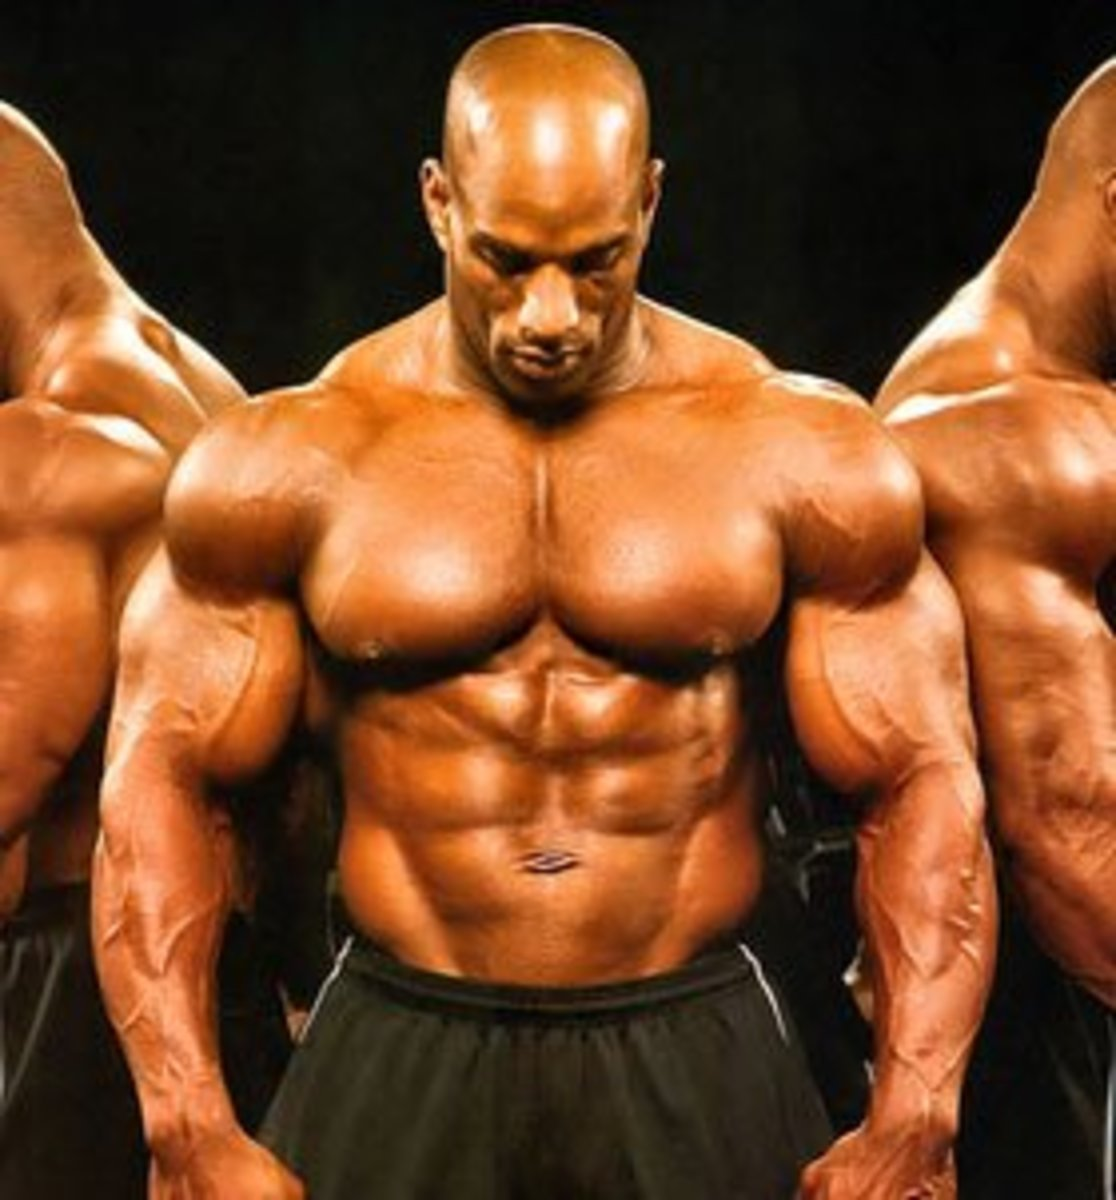 The Process of Building Big, Strong Muscles